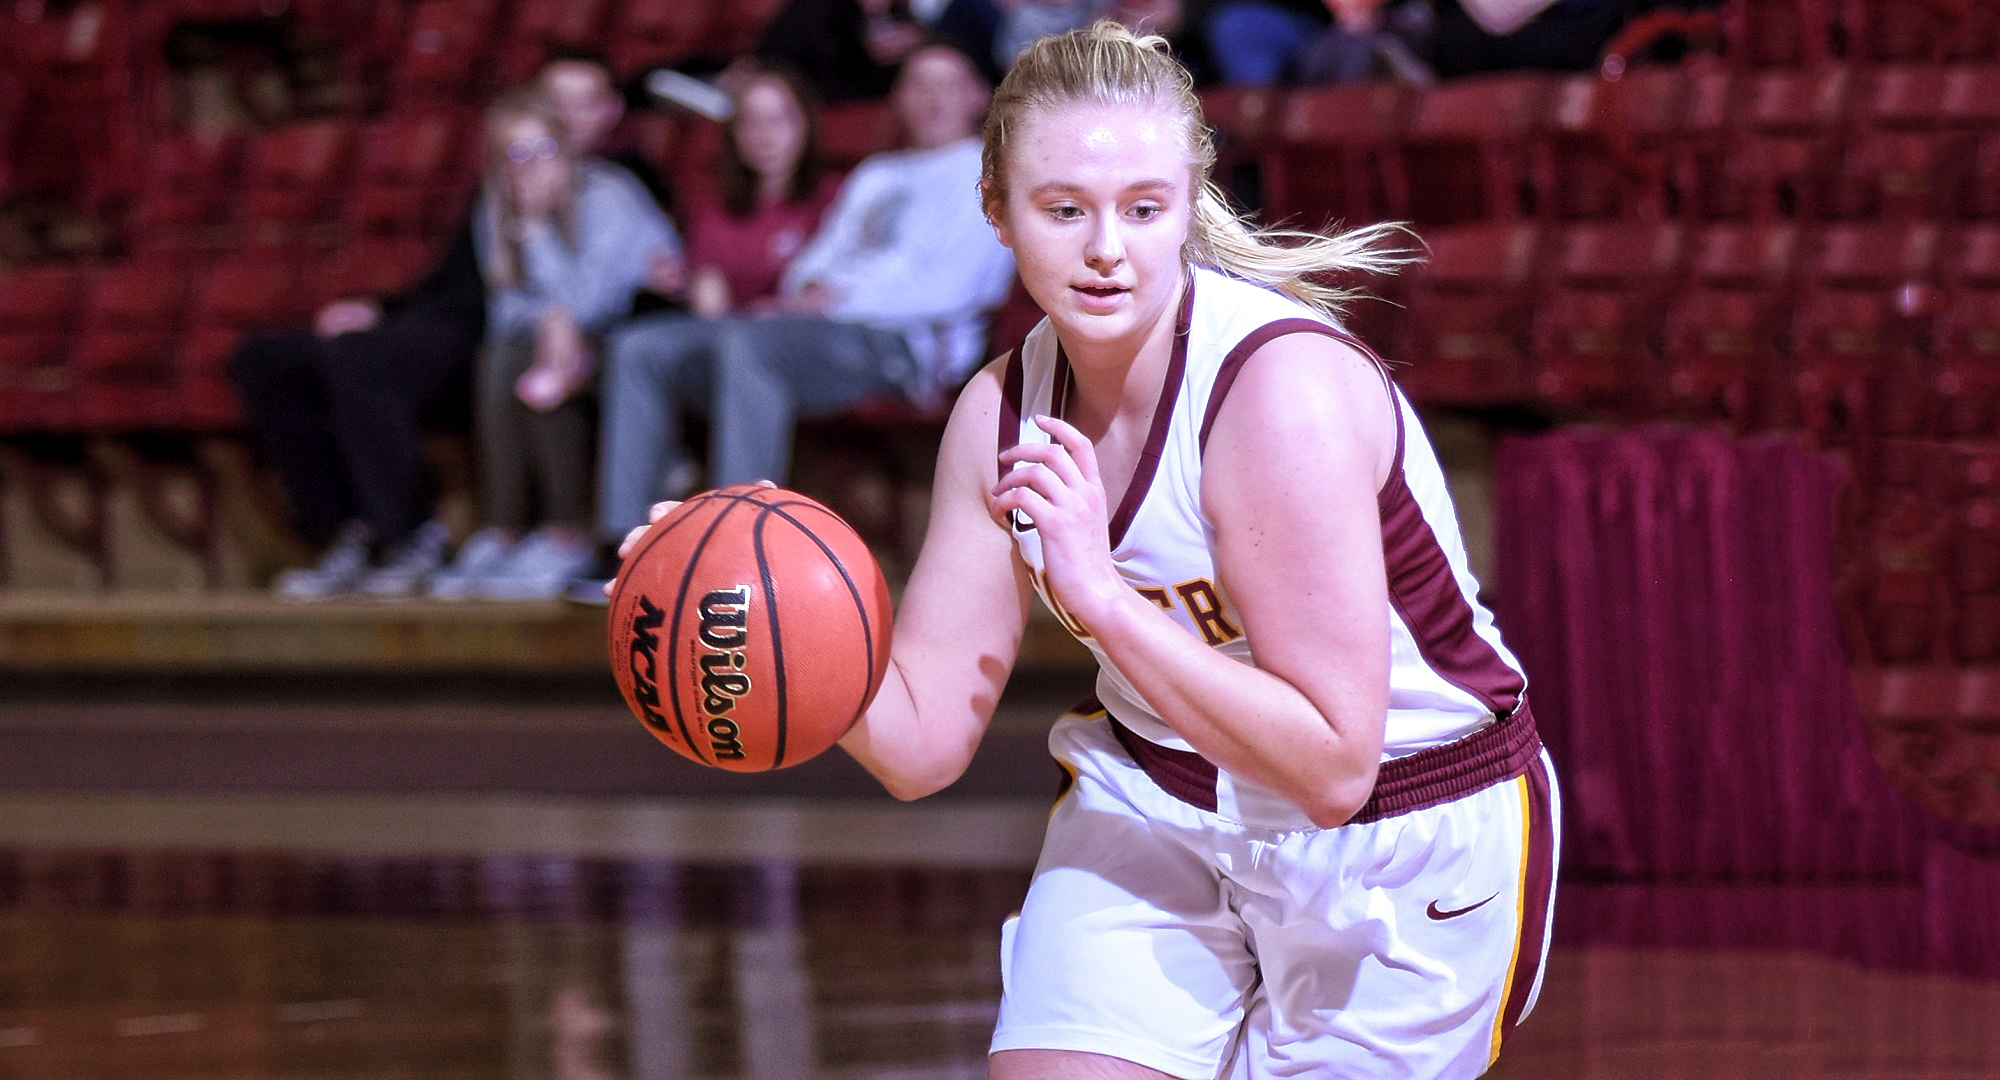 Sophomore Bailee Larson went 4-for-9 from the floor and scored a career-high 12 points to go along with six rebounds in the Cobbers' game at St. Benedict.